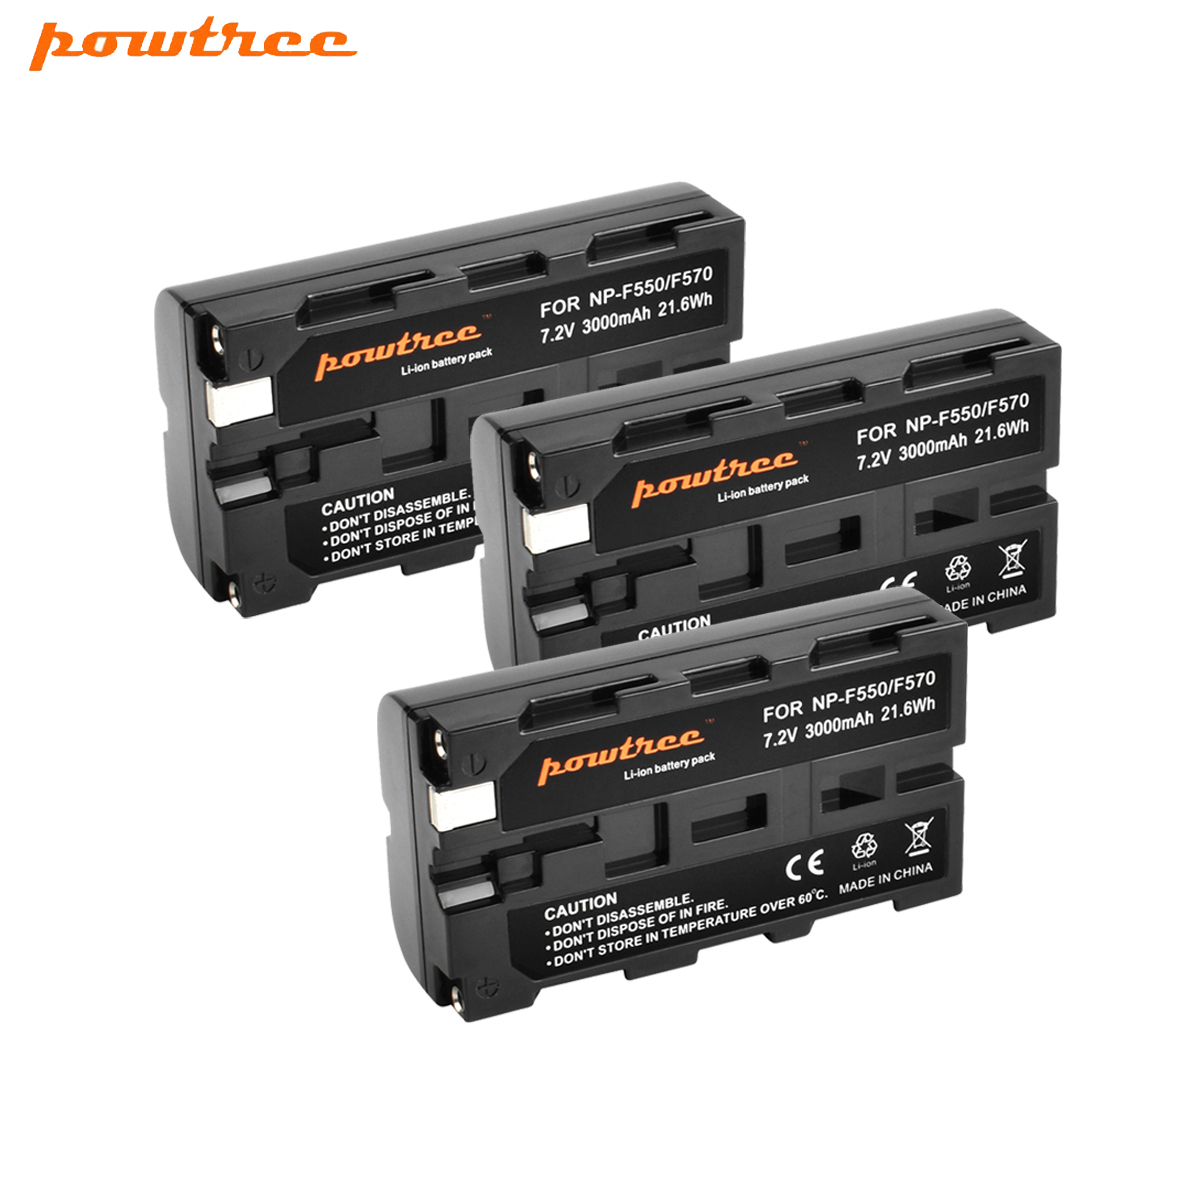 Powtree For Sony NP-F550 NP F550 NPF550 Camera <font><b>Battery</b></font> NP-F330 NP-F530 NP-F570 NP-F730 NP-<font><b>F750</b></font> Hi-8 GV-D200 D800 L10 image